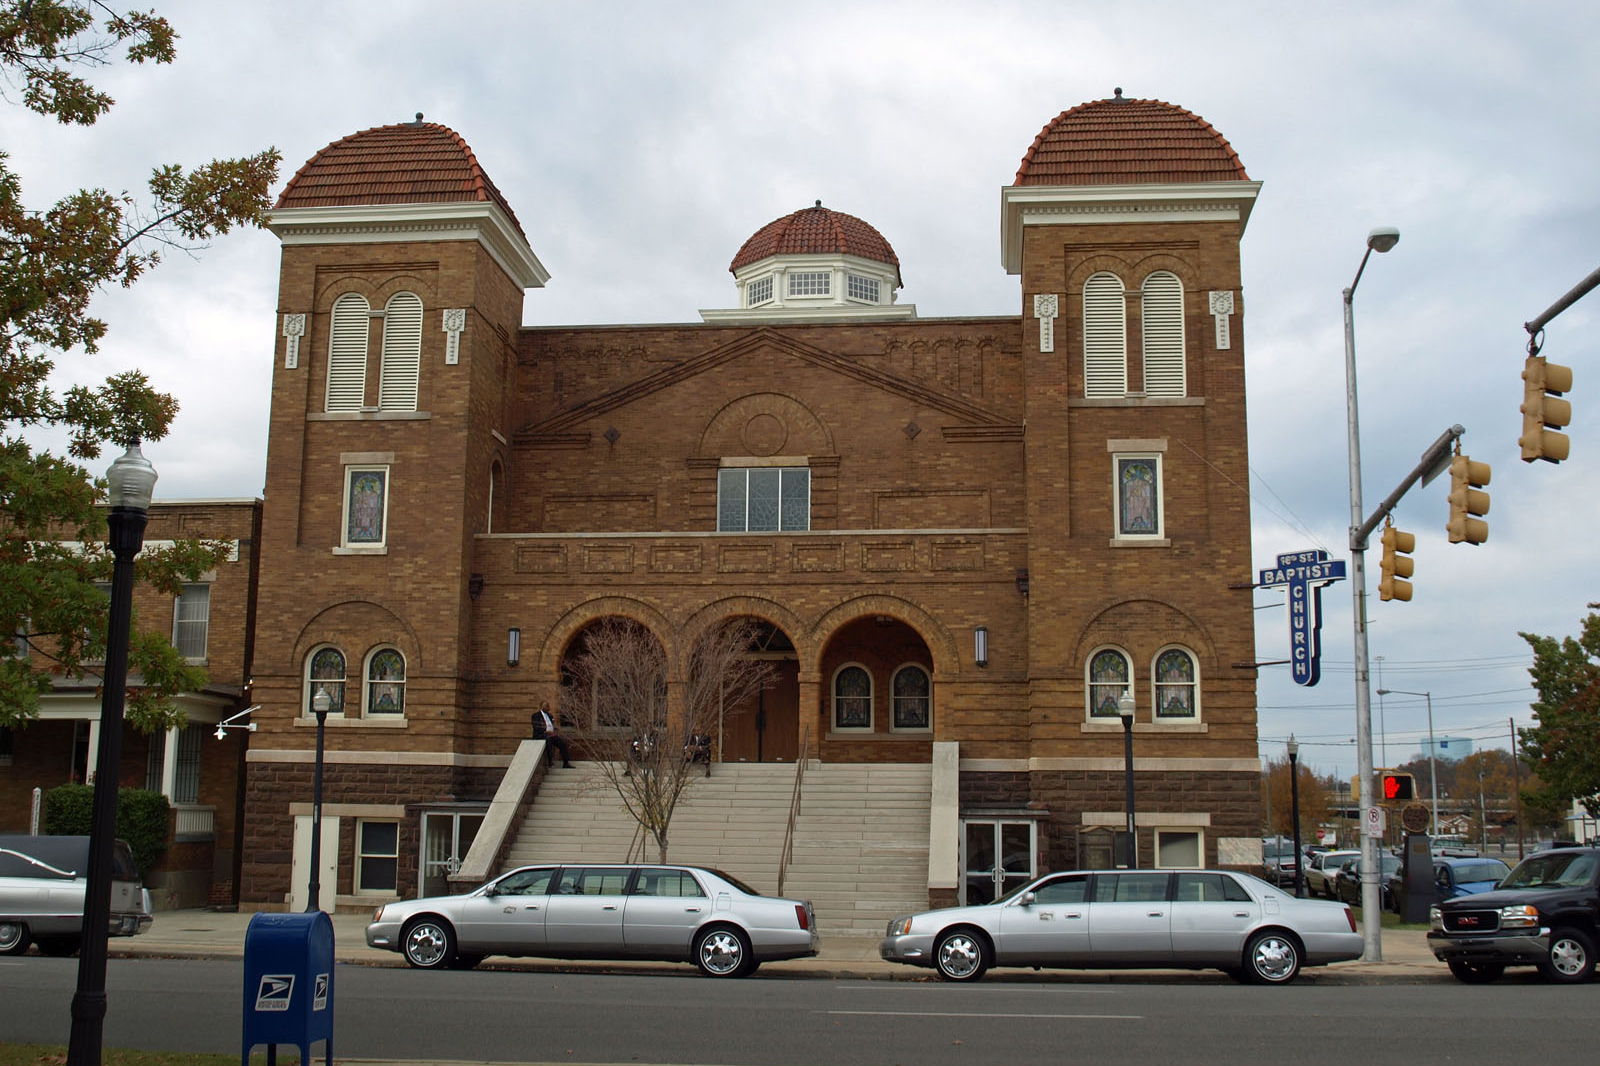 16th street baptist church bombing images